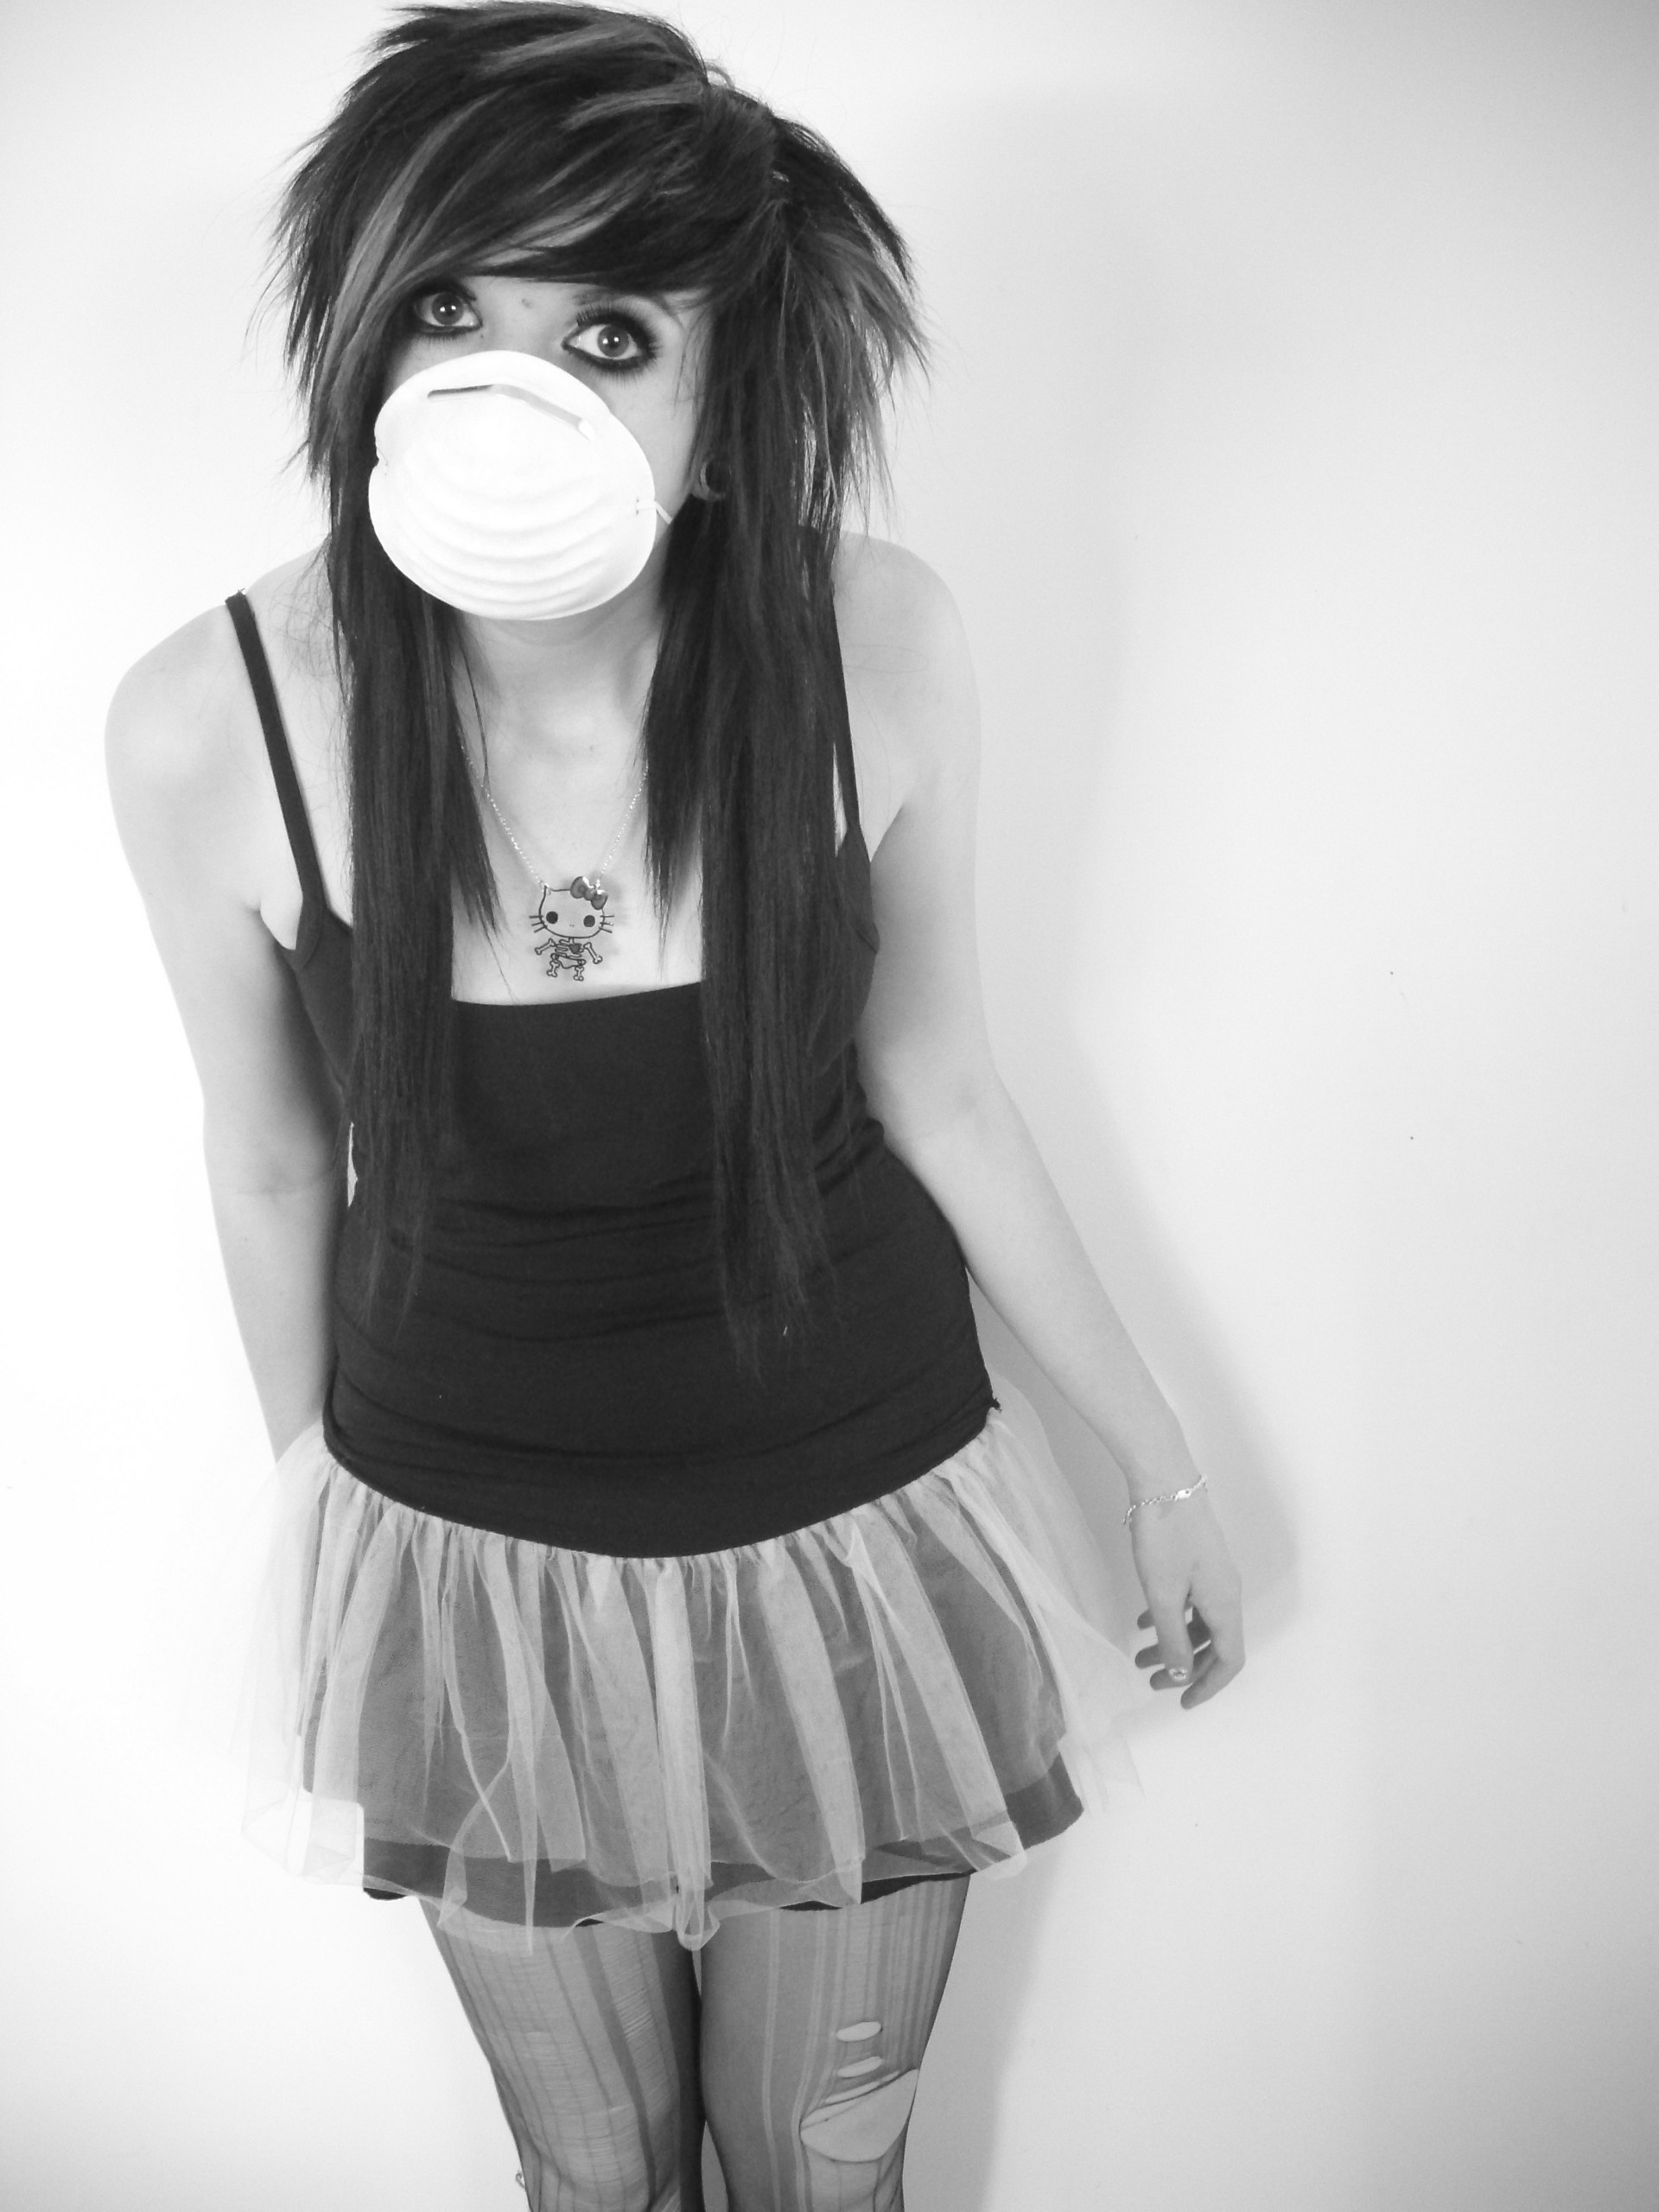 Emo and Scene Kids images emo girl HD wallpaper and background photos